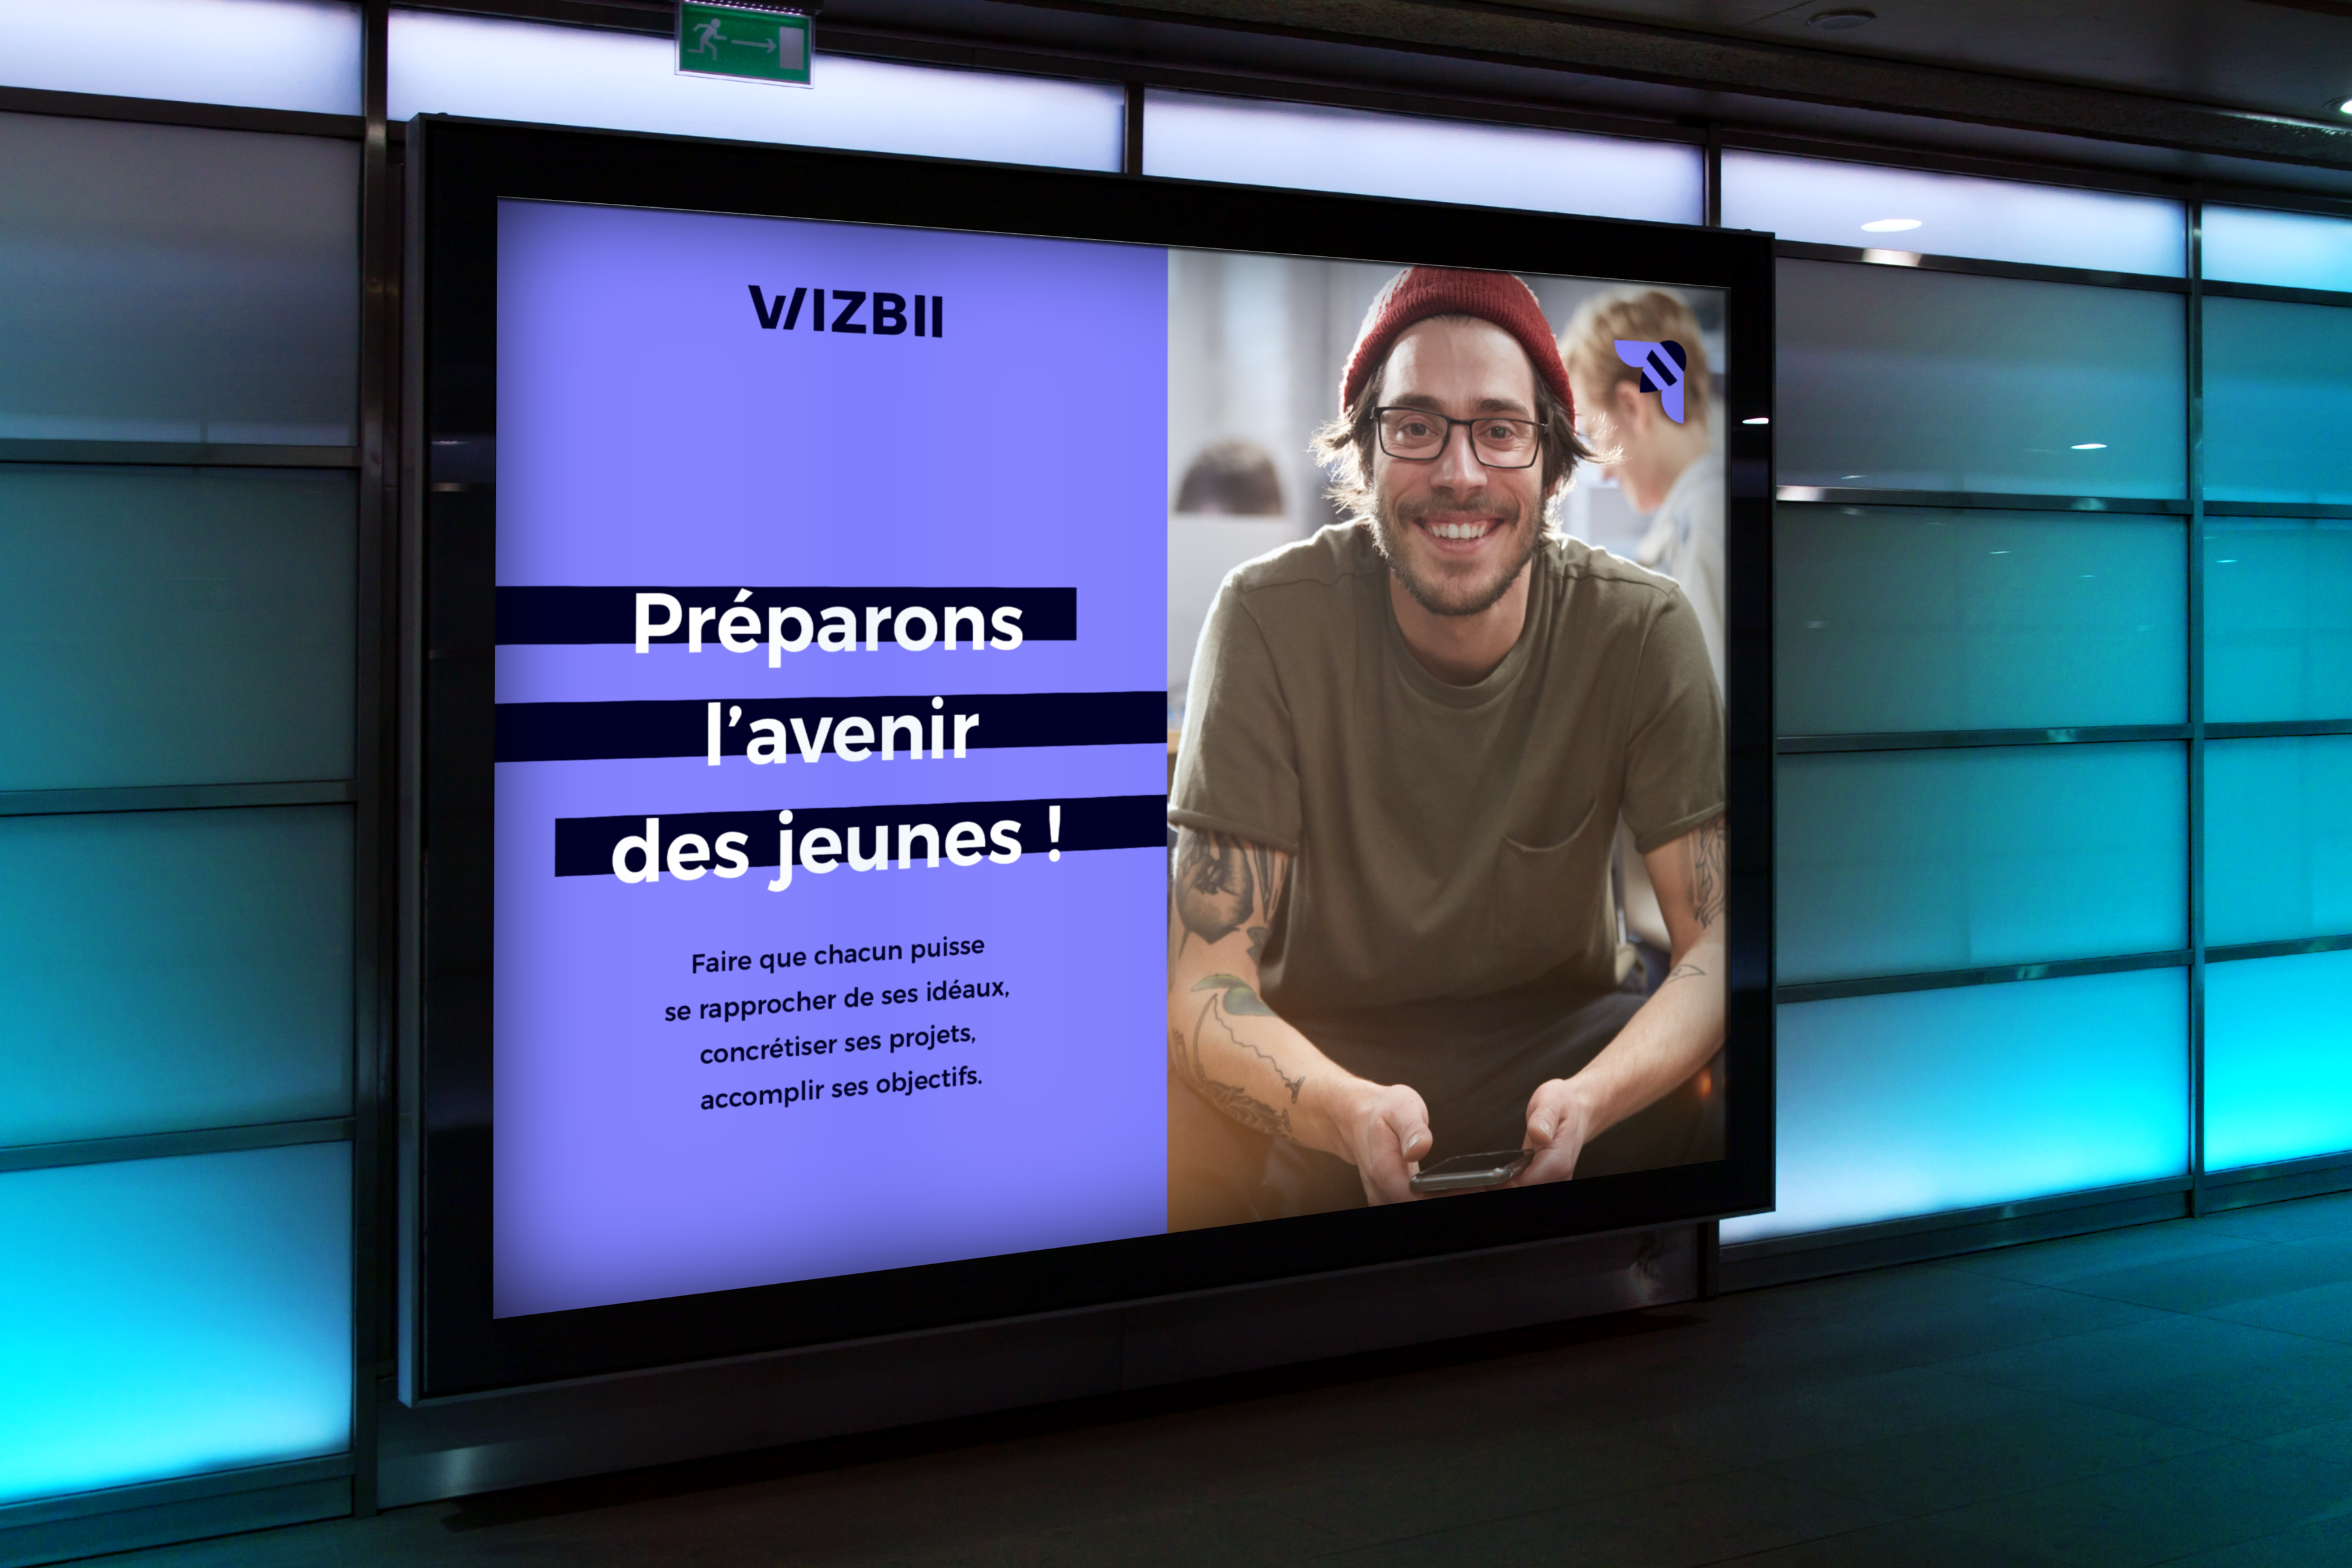 Affiche digitale de la start-up Wizbii